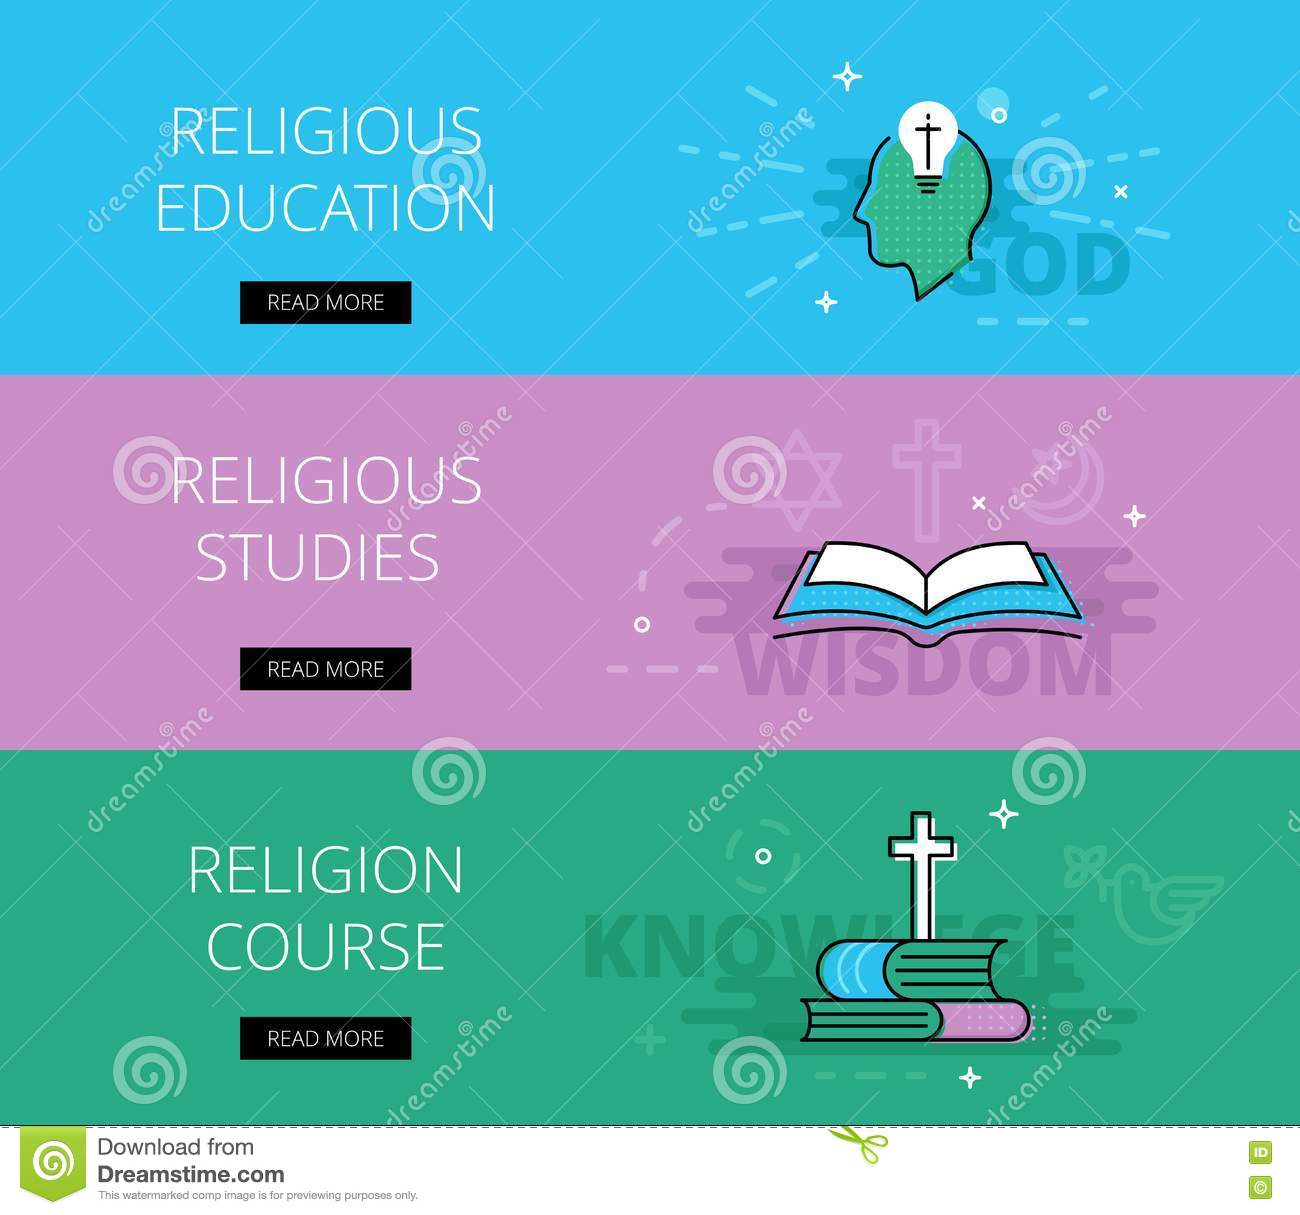 Religious Studies: Annunciation Cartoons, Illustrations & Vector Stock Images